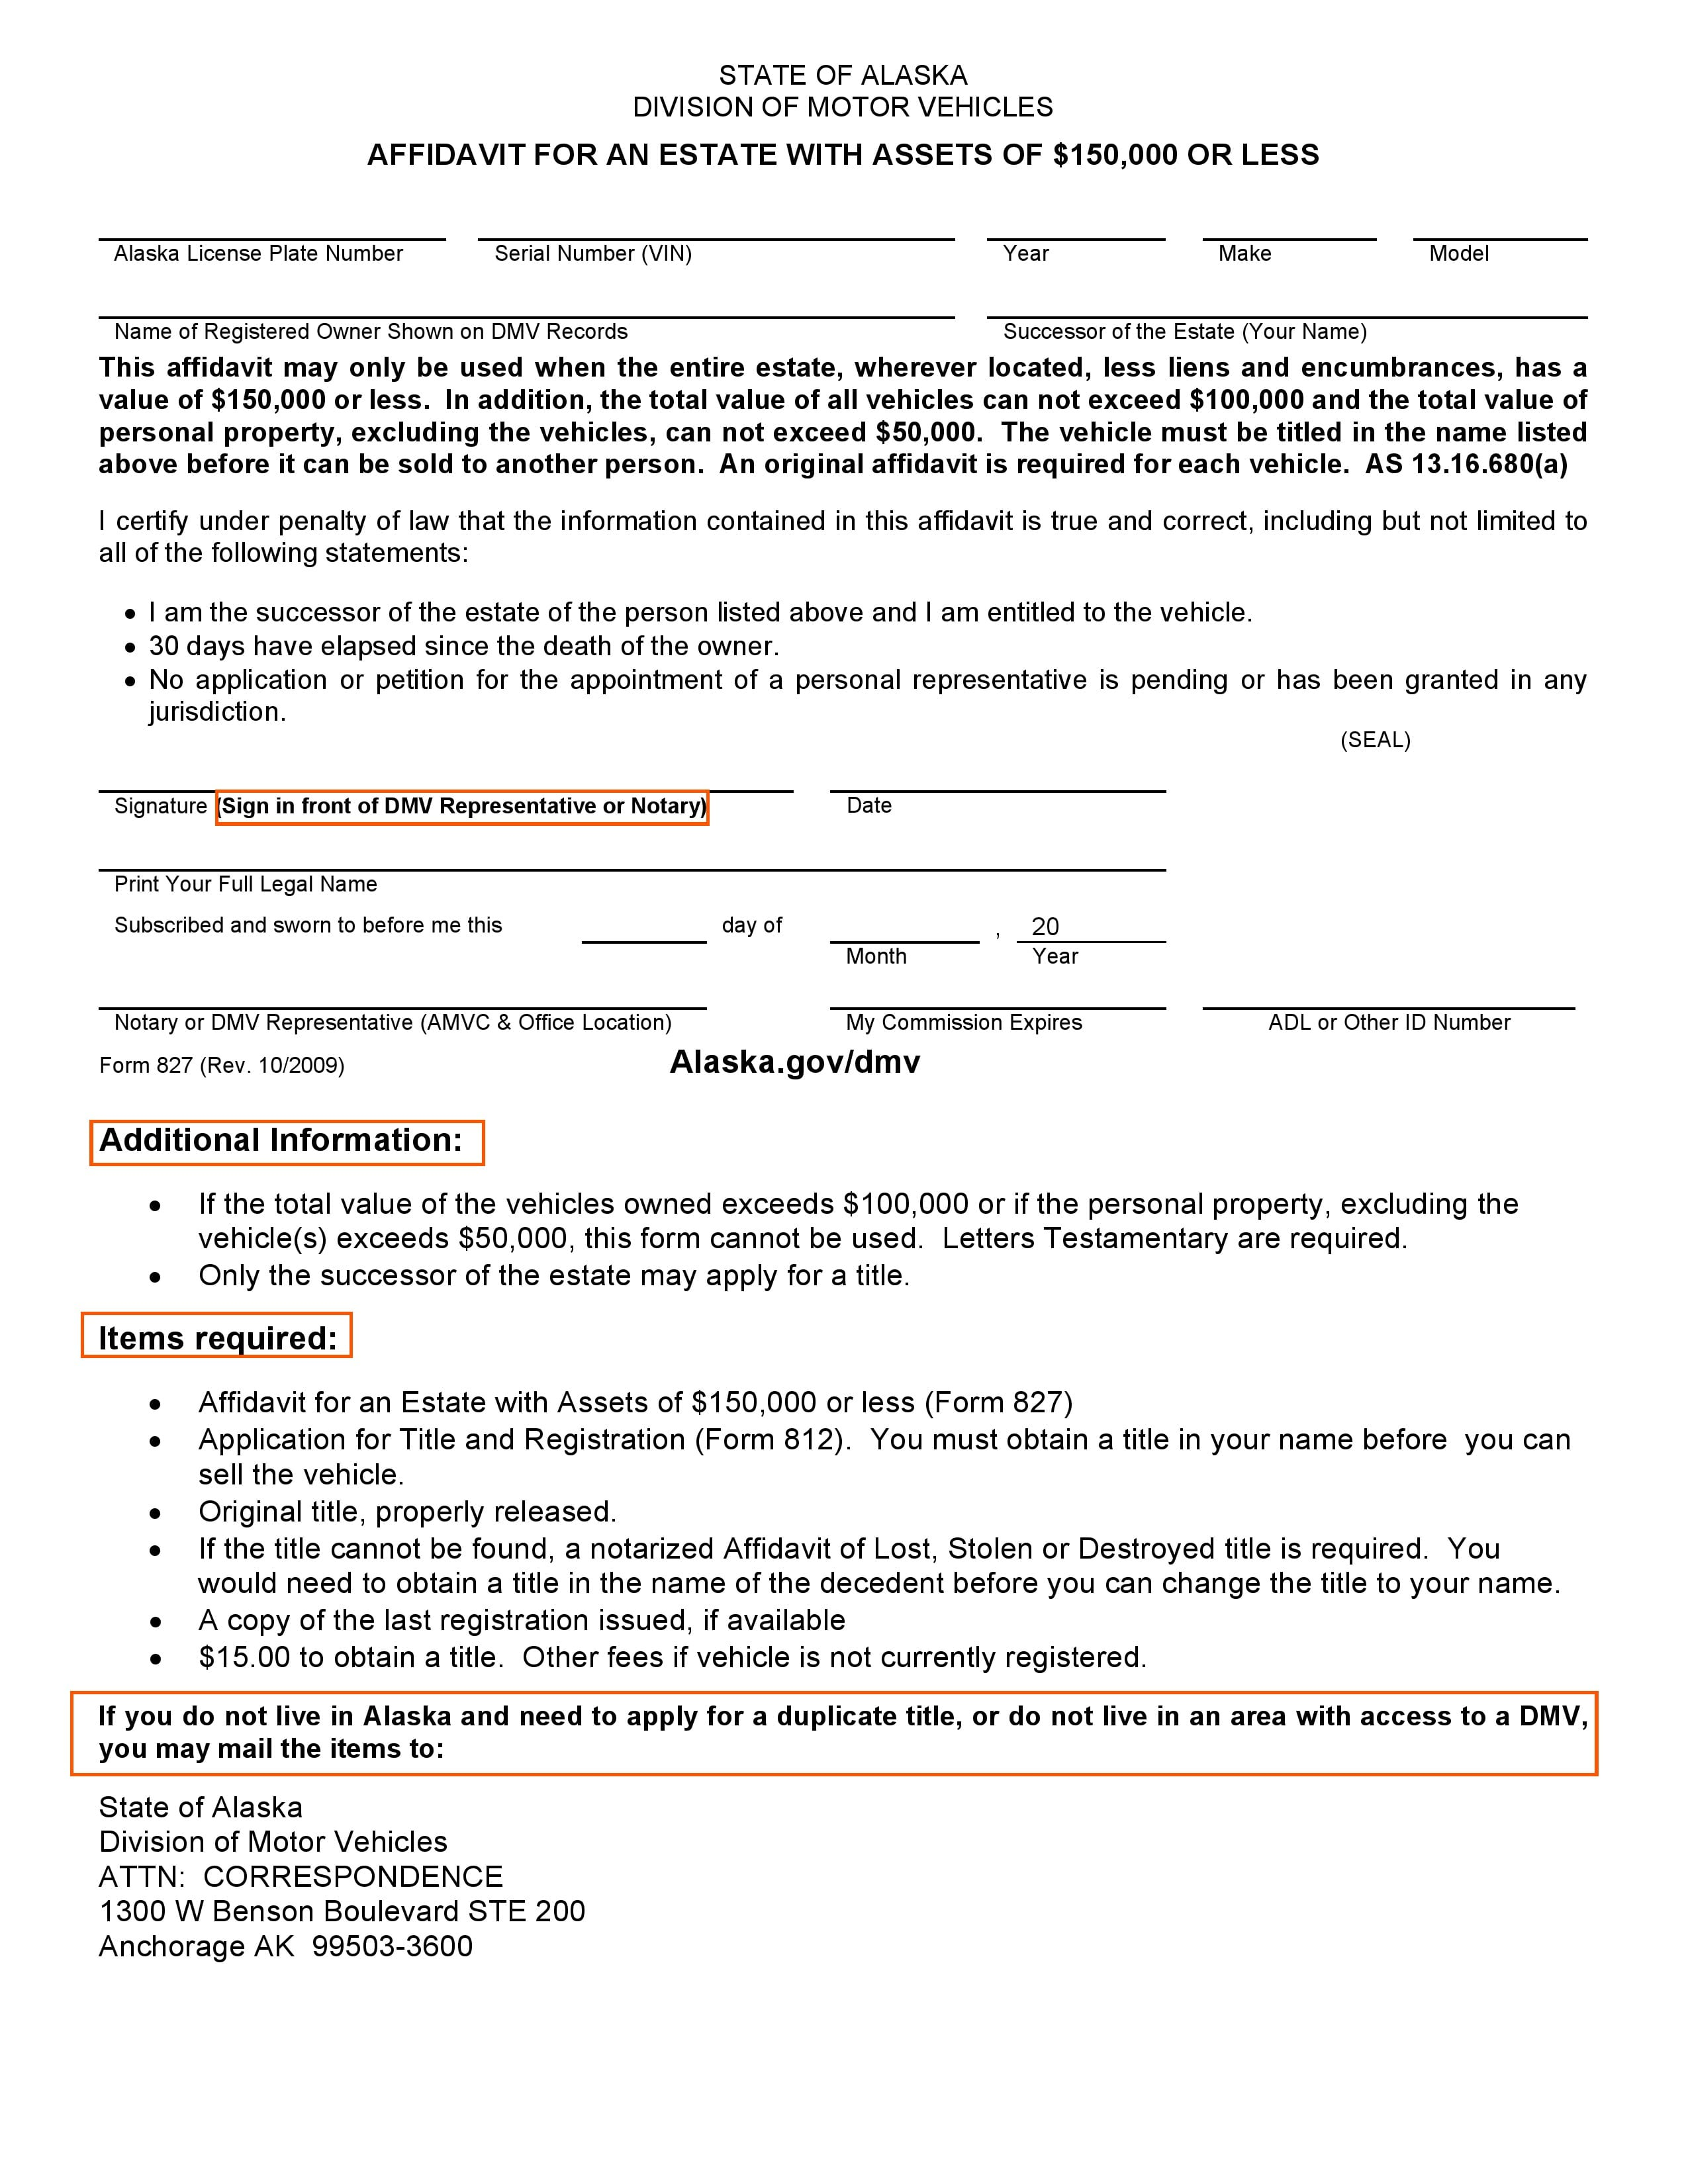 Alaska DMV Small Estate Affidavit Form 827